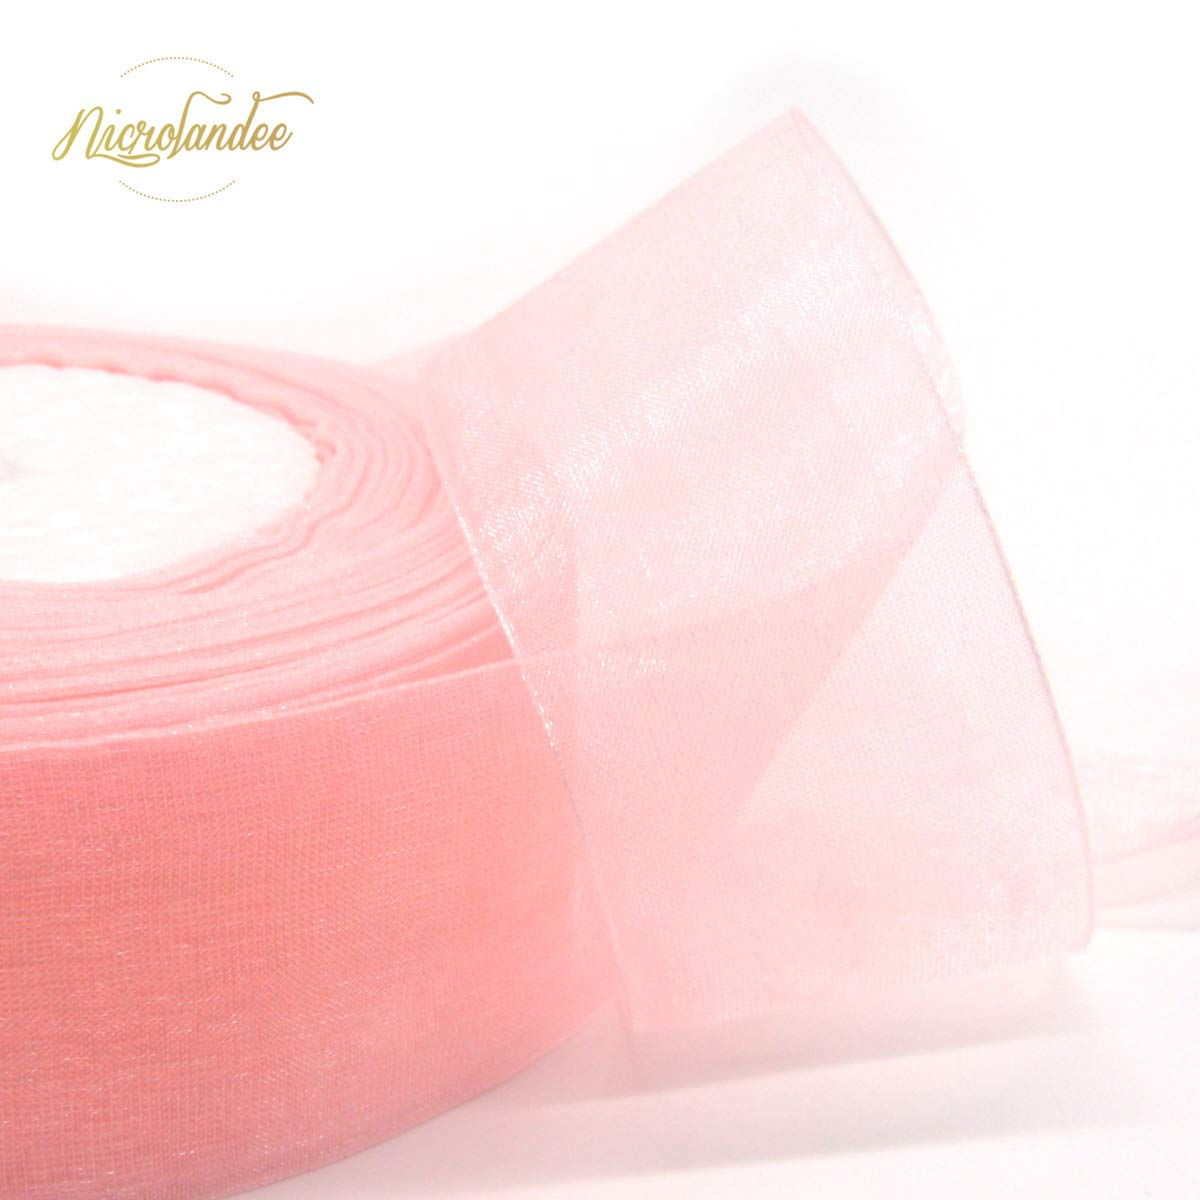 NICROLANDEE 3pcs Sheer Chiffon Ribbon 1.5Inch×49 Yards Dusty Rose Fading Ribbon Set for Wedding Gift Package Valentines Bouquets Wrapping Birthday Baby Shower Home Decor Wreath Decorations Fabric by NICROLANDEE (Image #6)